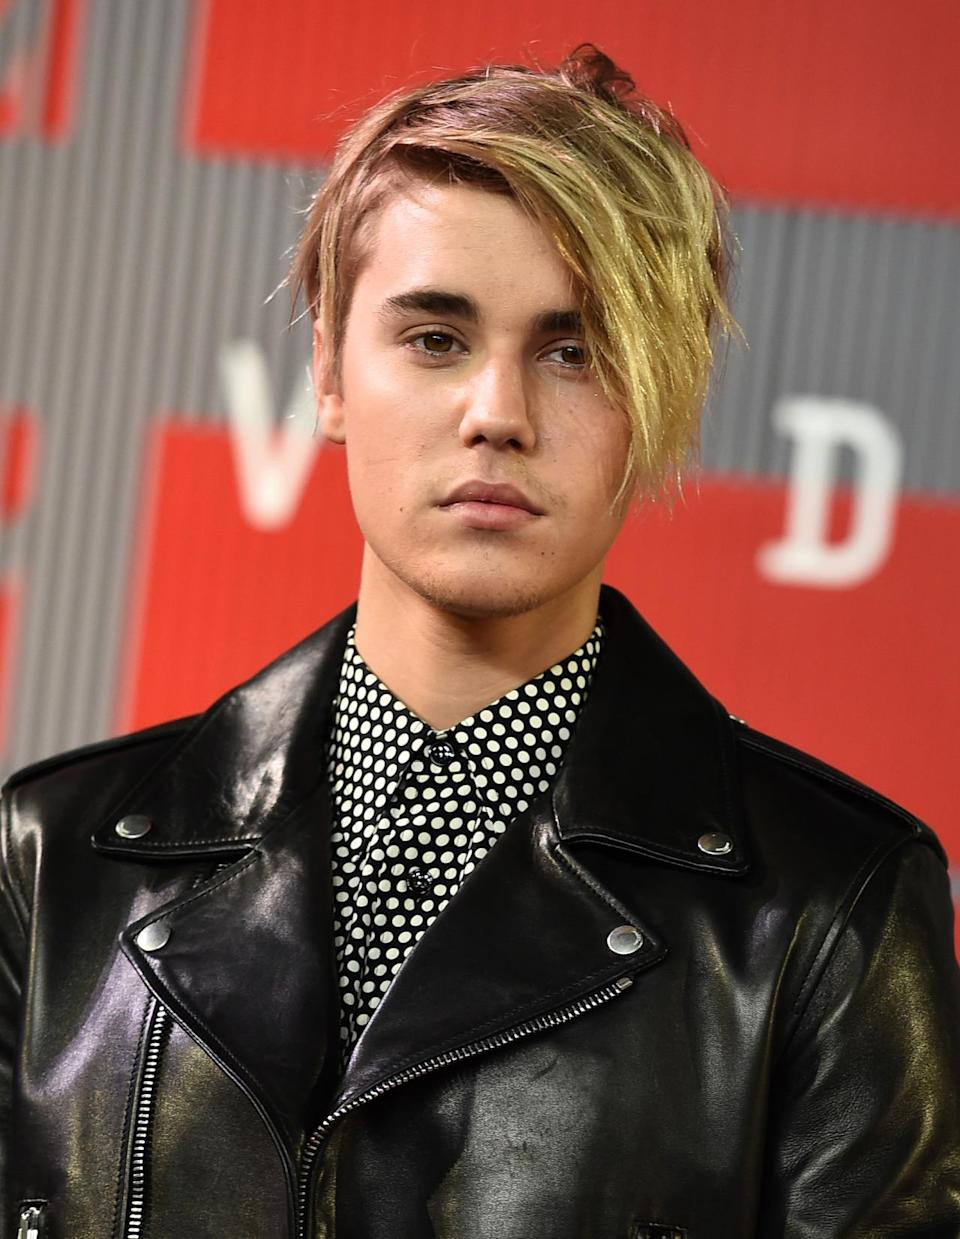 """<p>Ever since Biebs burst on the scene with his bowl cut, the pop singer has been all about his hair. He debuted a new look at the VMAs: Piecey, messy, and blonde with one side shorter than the other. It earned him a shoutout from the stage from host Miley Cyrus who noted, """"I like your swoop!""""</p><p>Source: Getty Images</p>"""